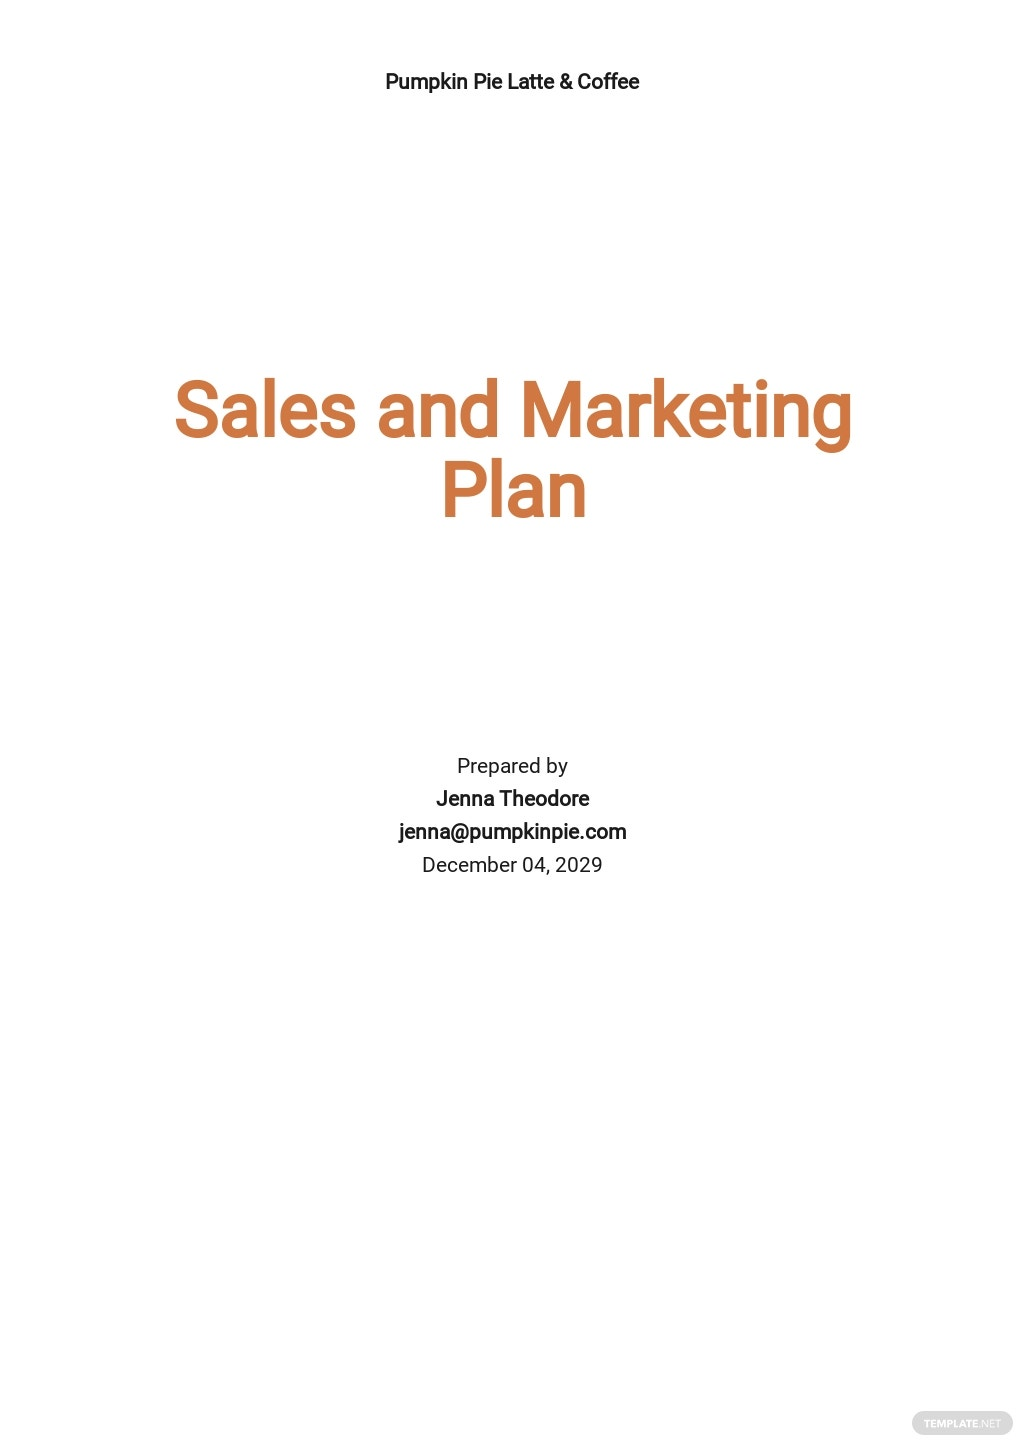 Sales and Marketing Plan Template.jpe